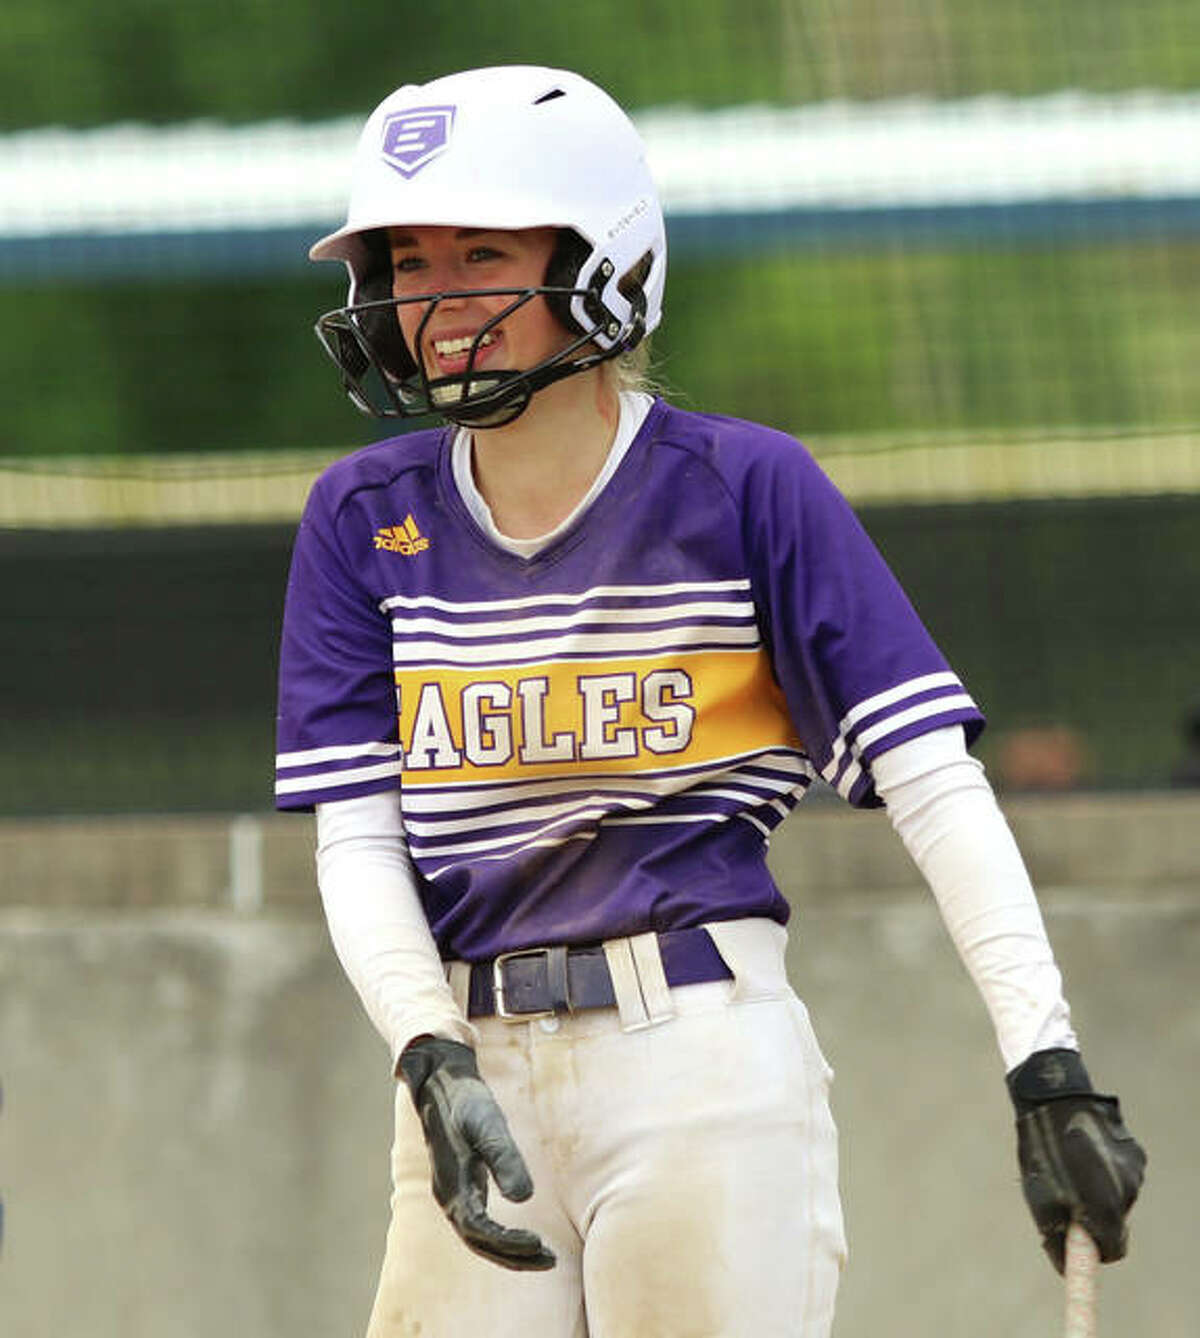 CM's Braylen Cox was 2 for 4 at the plate with a pair of doubles and seven RBIs to lead the Eagles to a 14-3 victory over Granite City Friday at the Bethalto Sports complex.